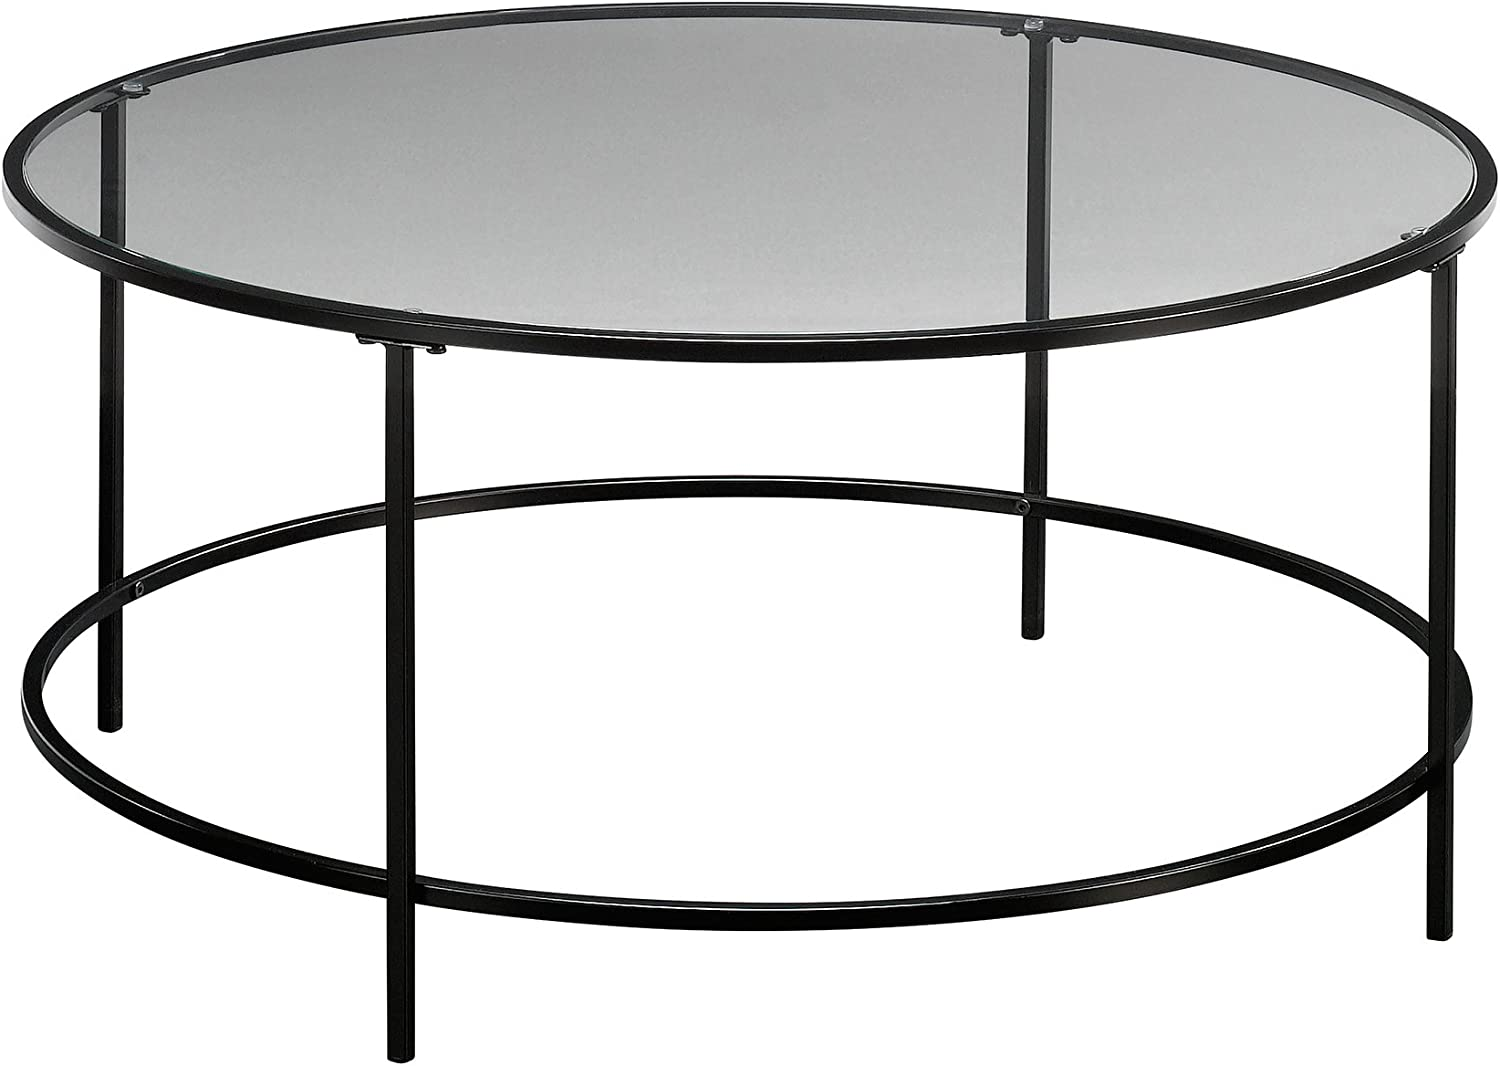 Surprising Round Modern Soft Sauder Coffee Glass Clear Black Table Home Interior And Landscaping Mentranervesignezvosmurscom